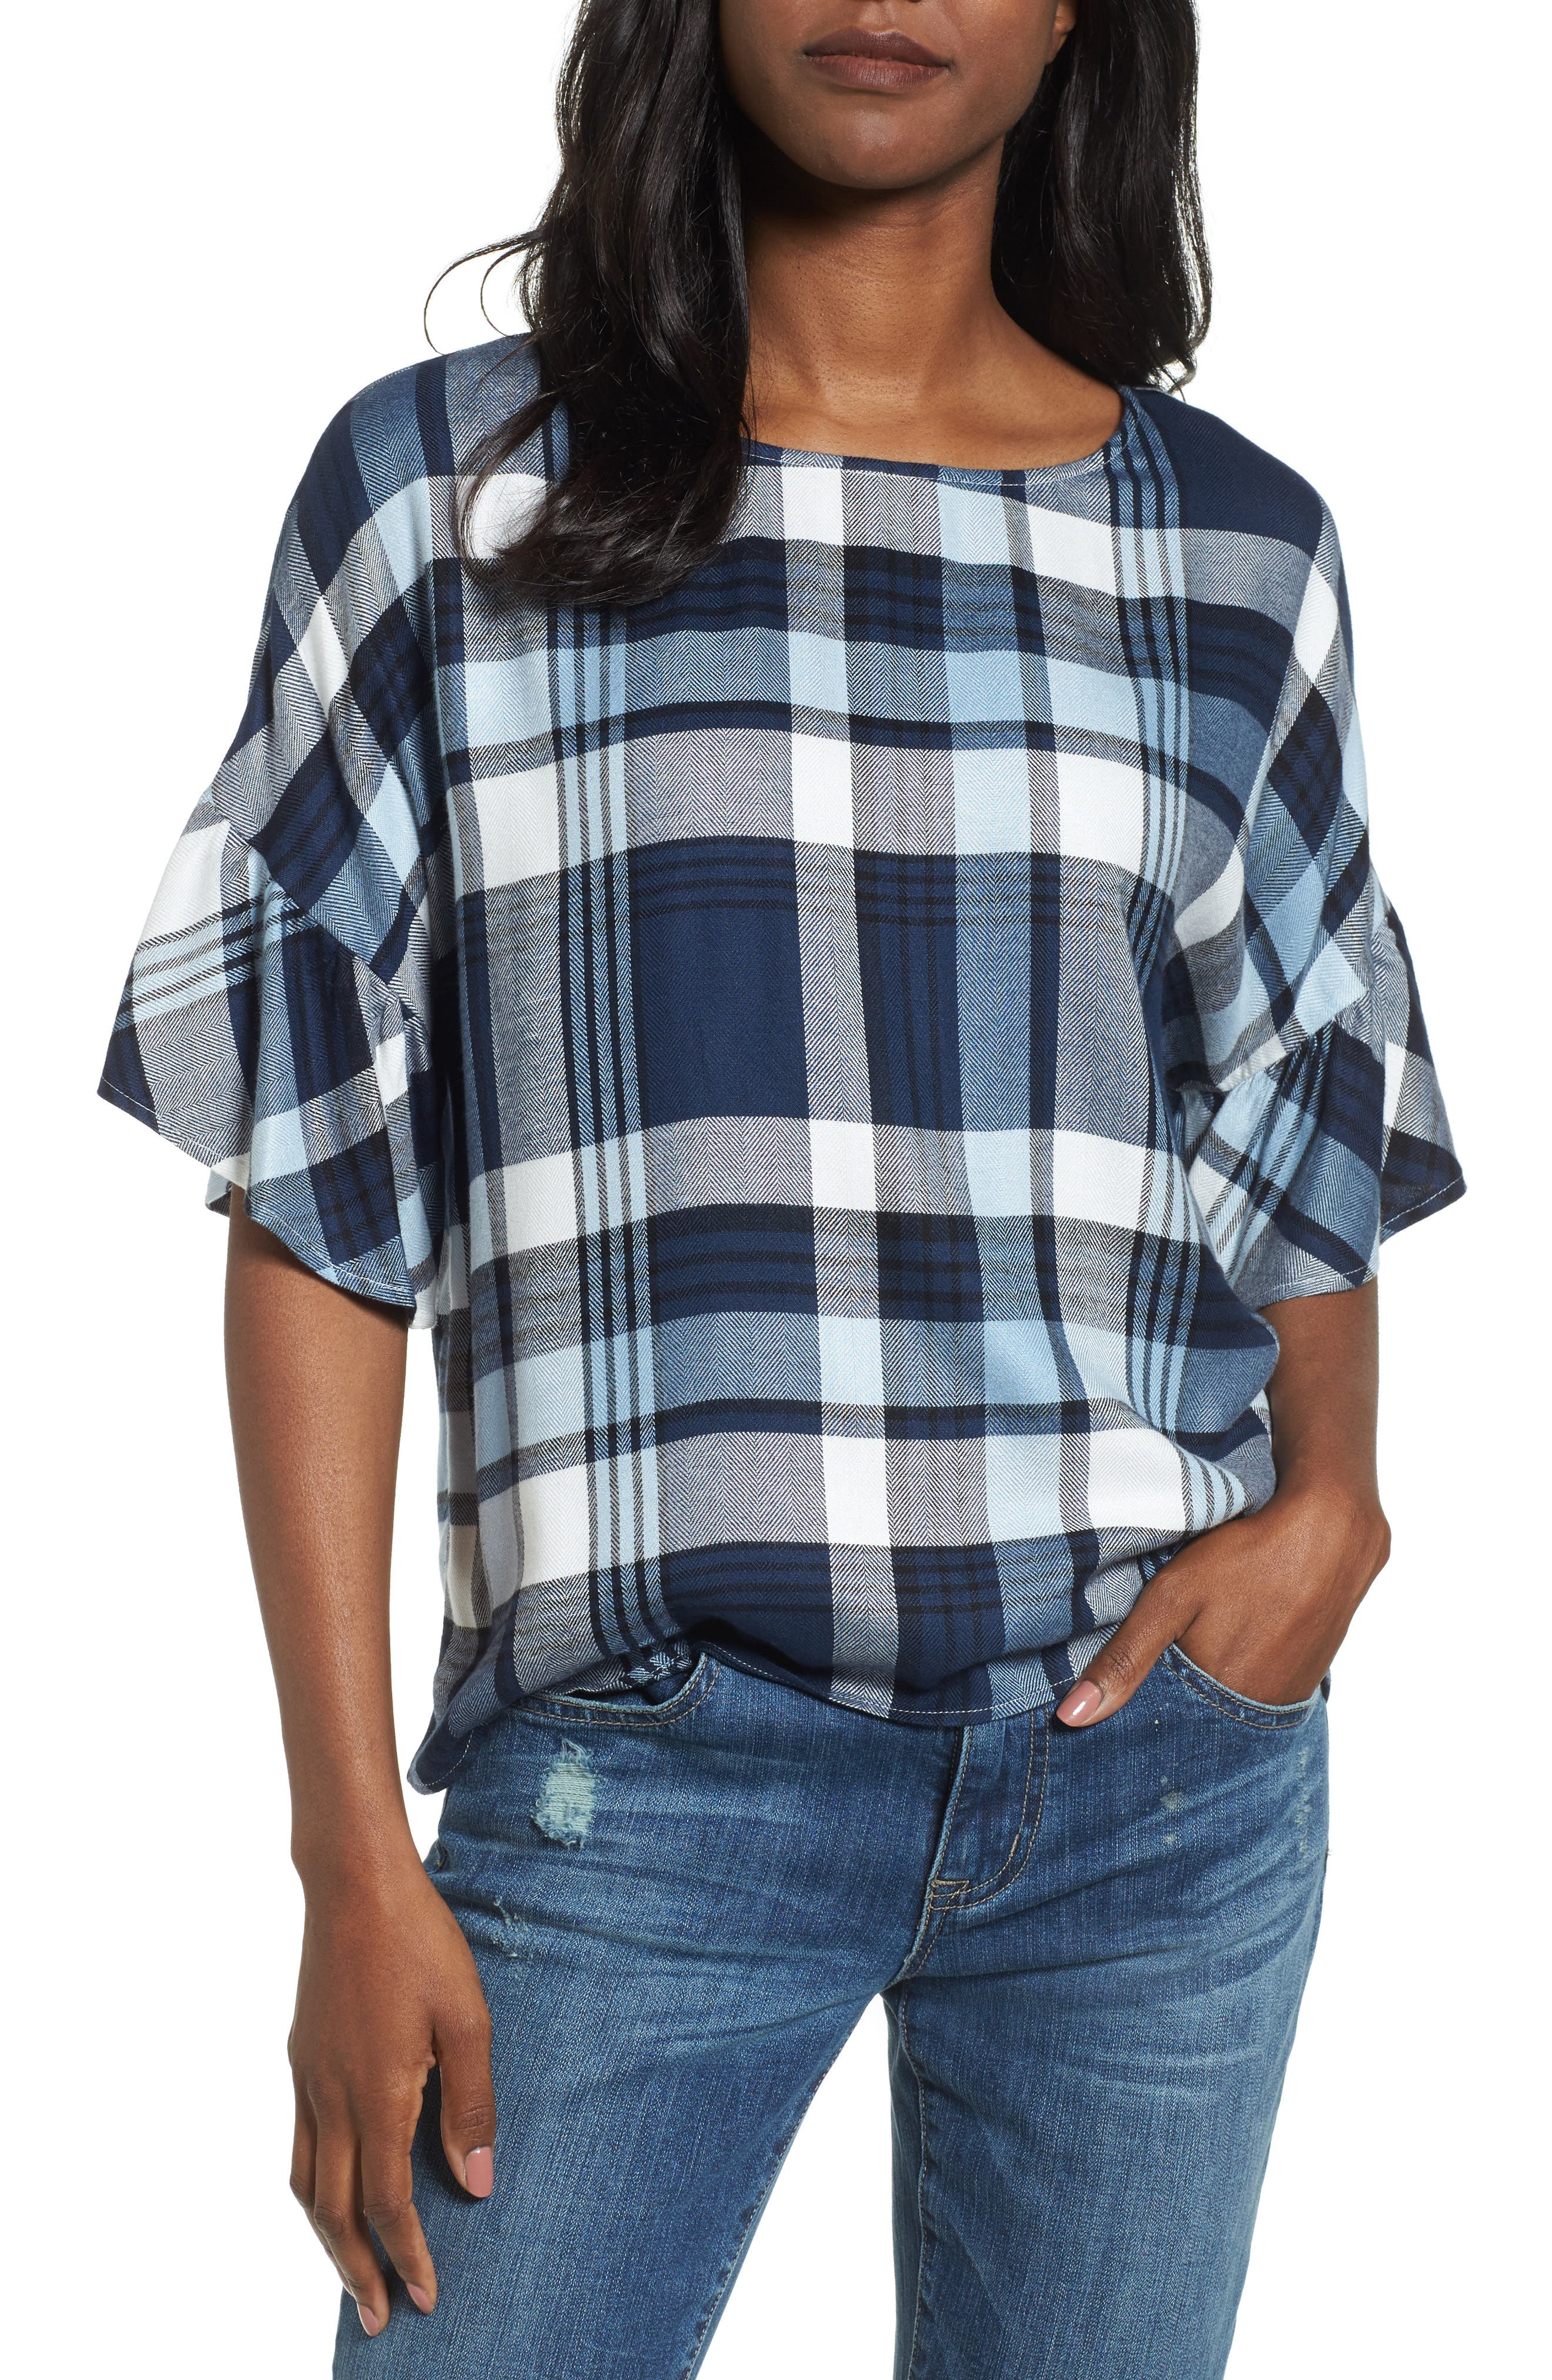 Main Image - Two by Vince Camuto Ruffle Sleeve Plaid Top (Regular & Petite)